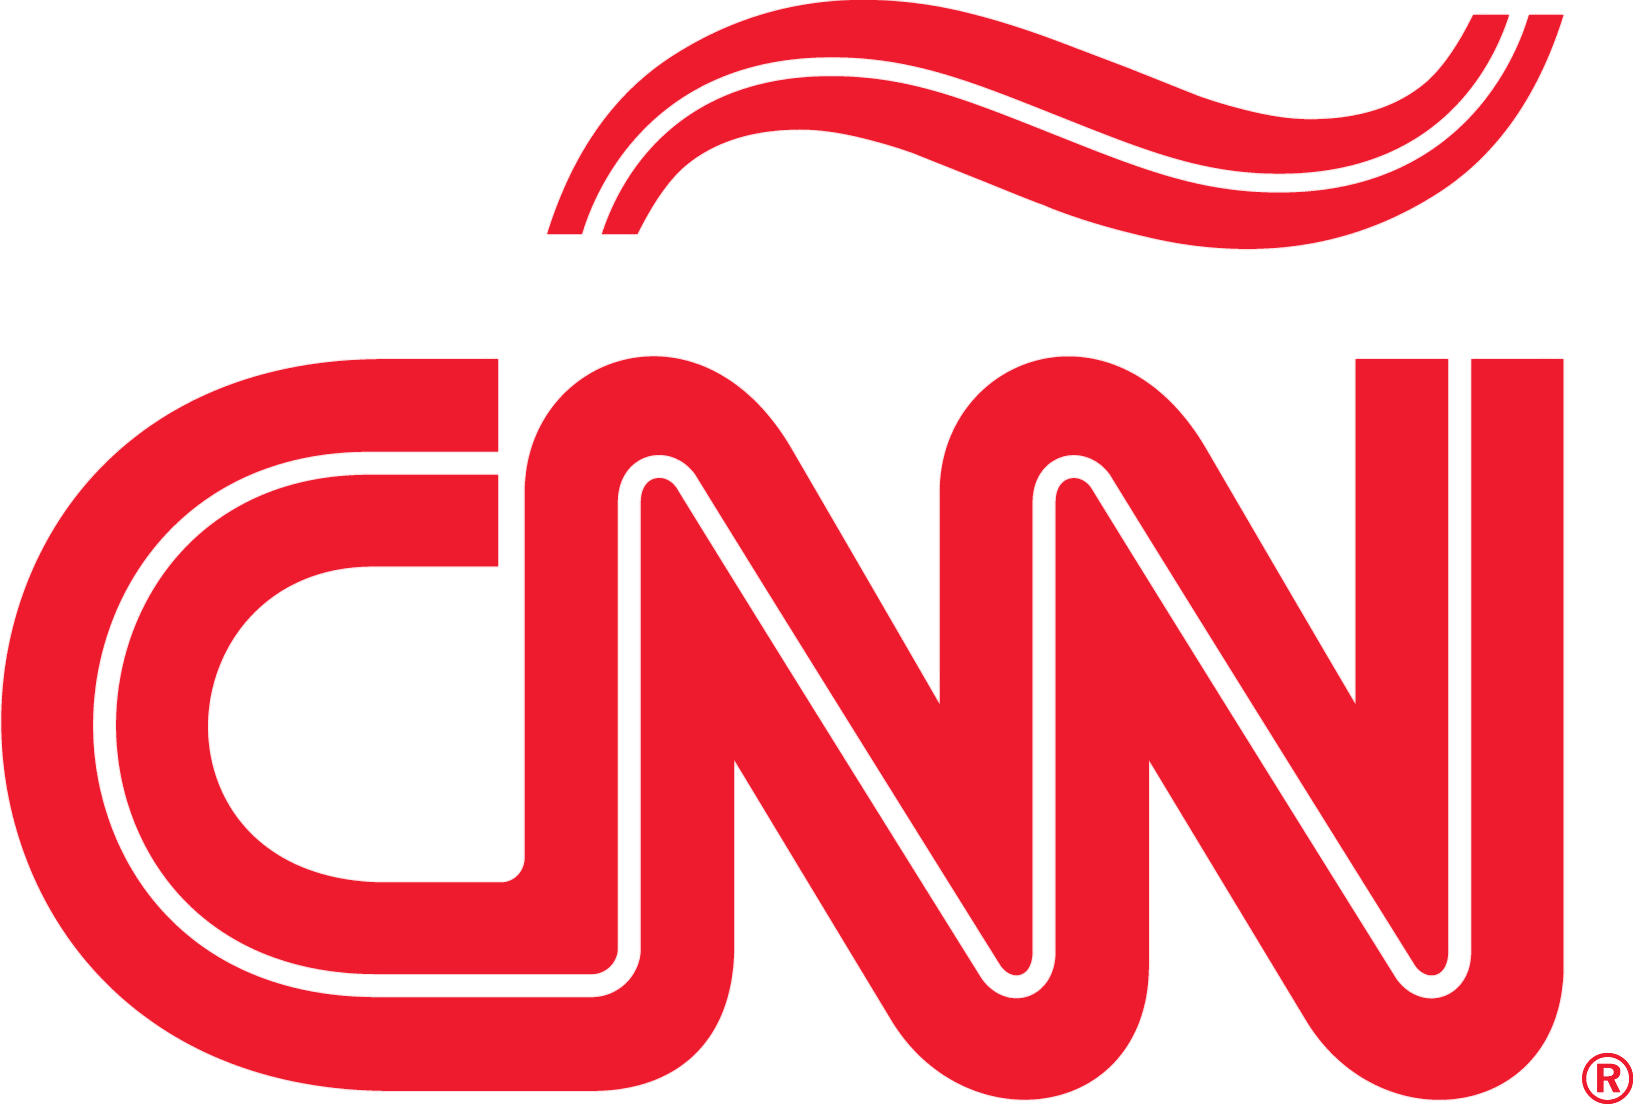 CNN en Español channel logo